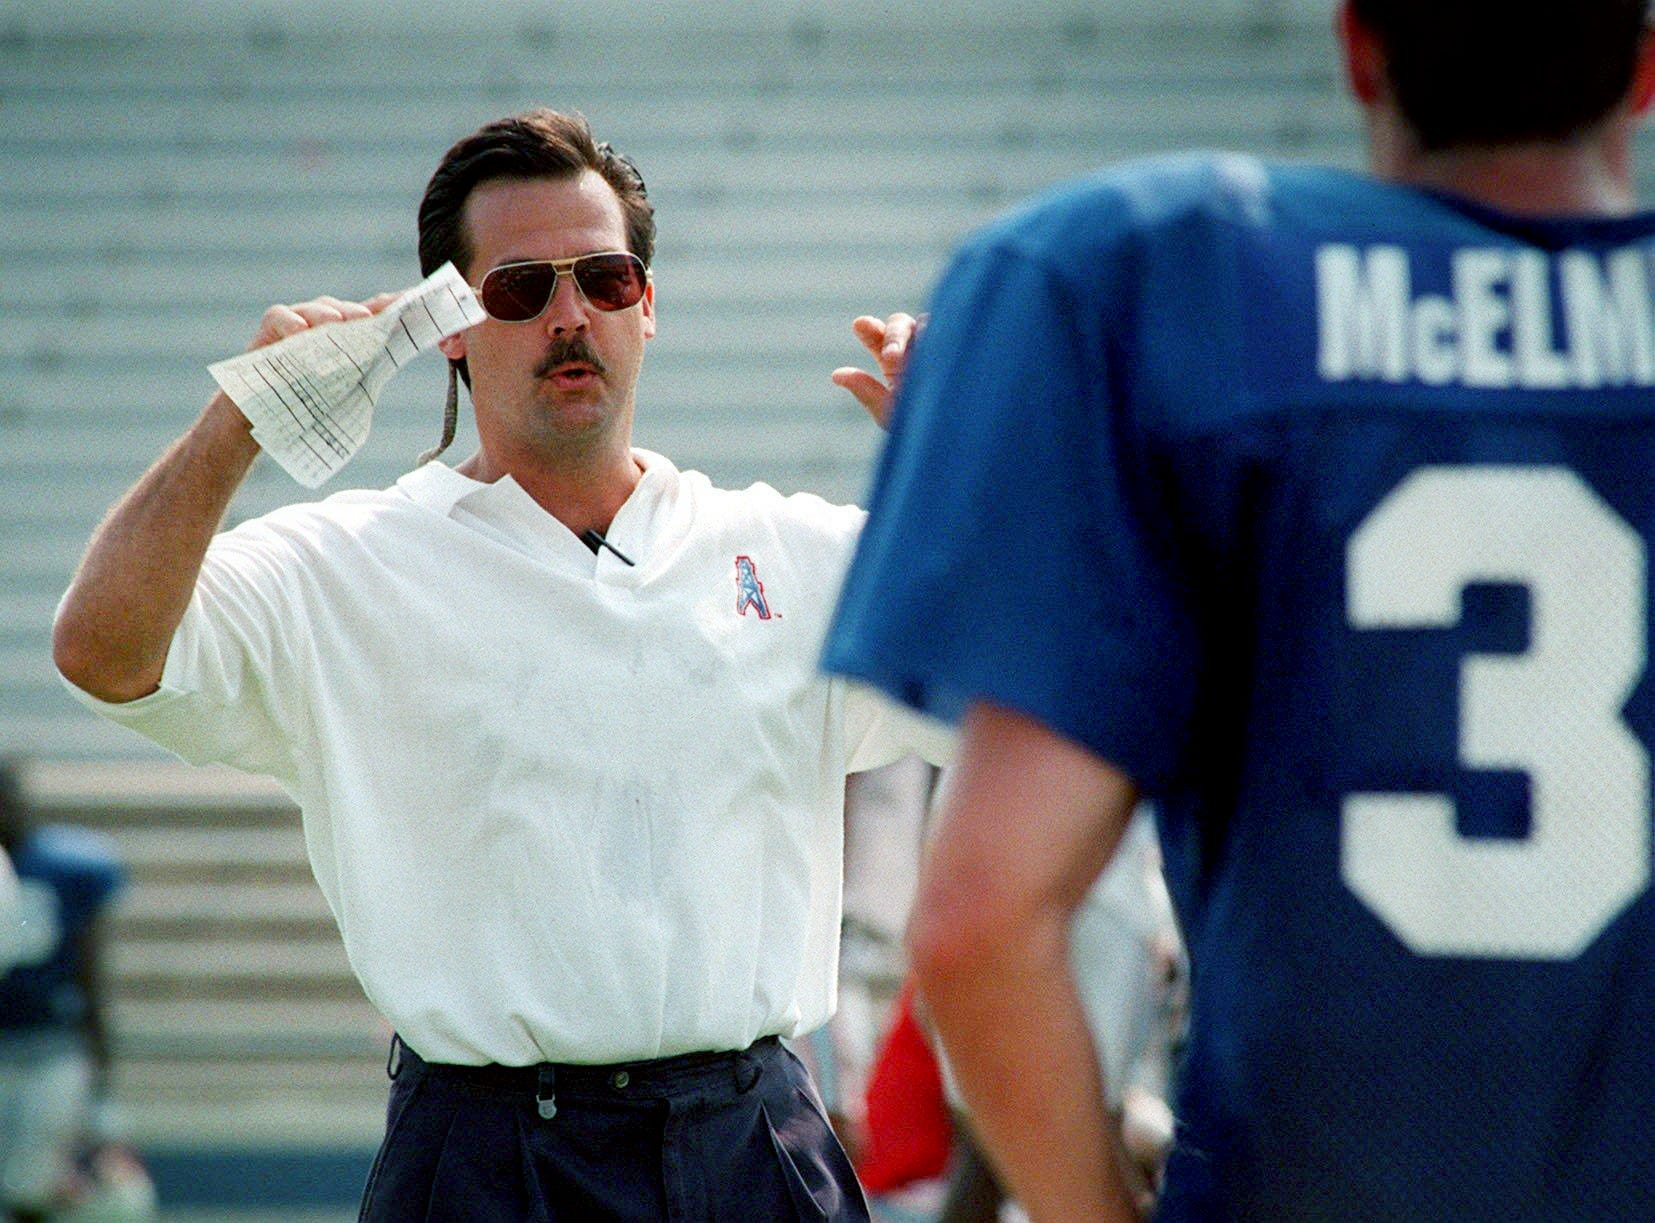 Tennessee Oilers head coach Jeff Fisher goes over a play with defensive players during practice at Tennessee State University July 29, 1997.